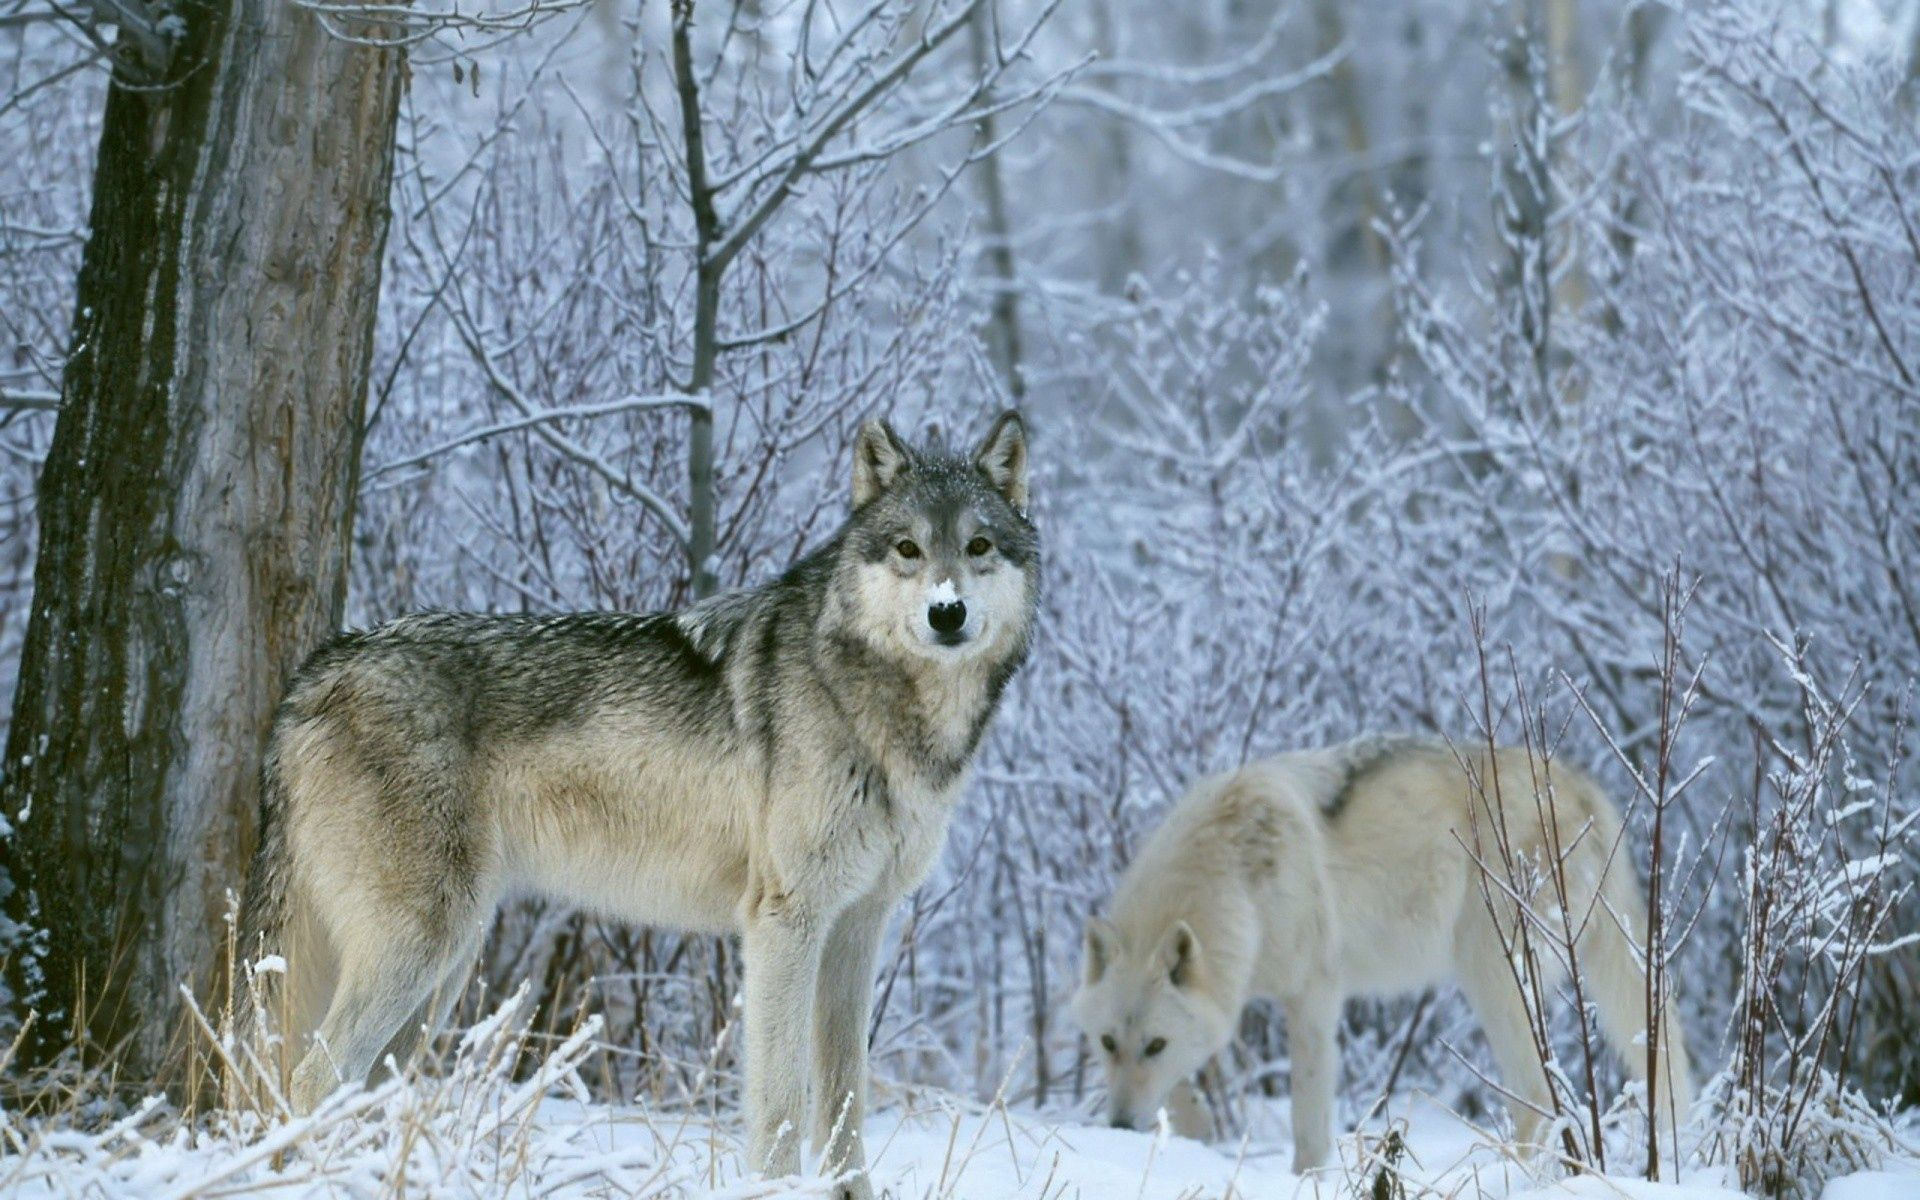 153419 download wallpaper Animals, Wolfs, Trees, Snow, Forest screensavers and pictures for free